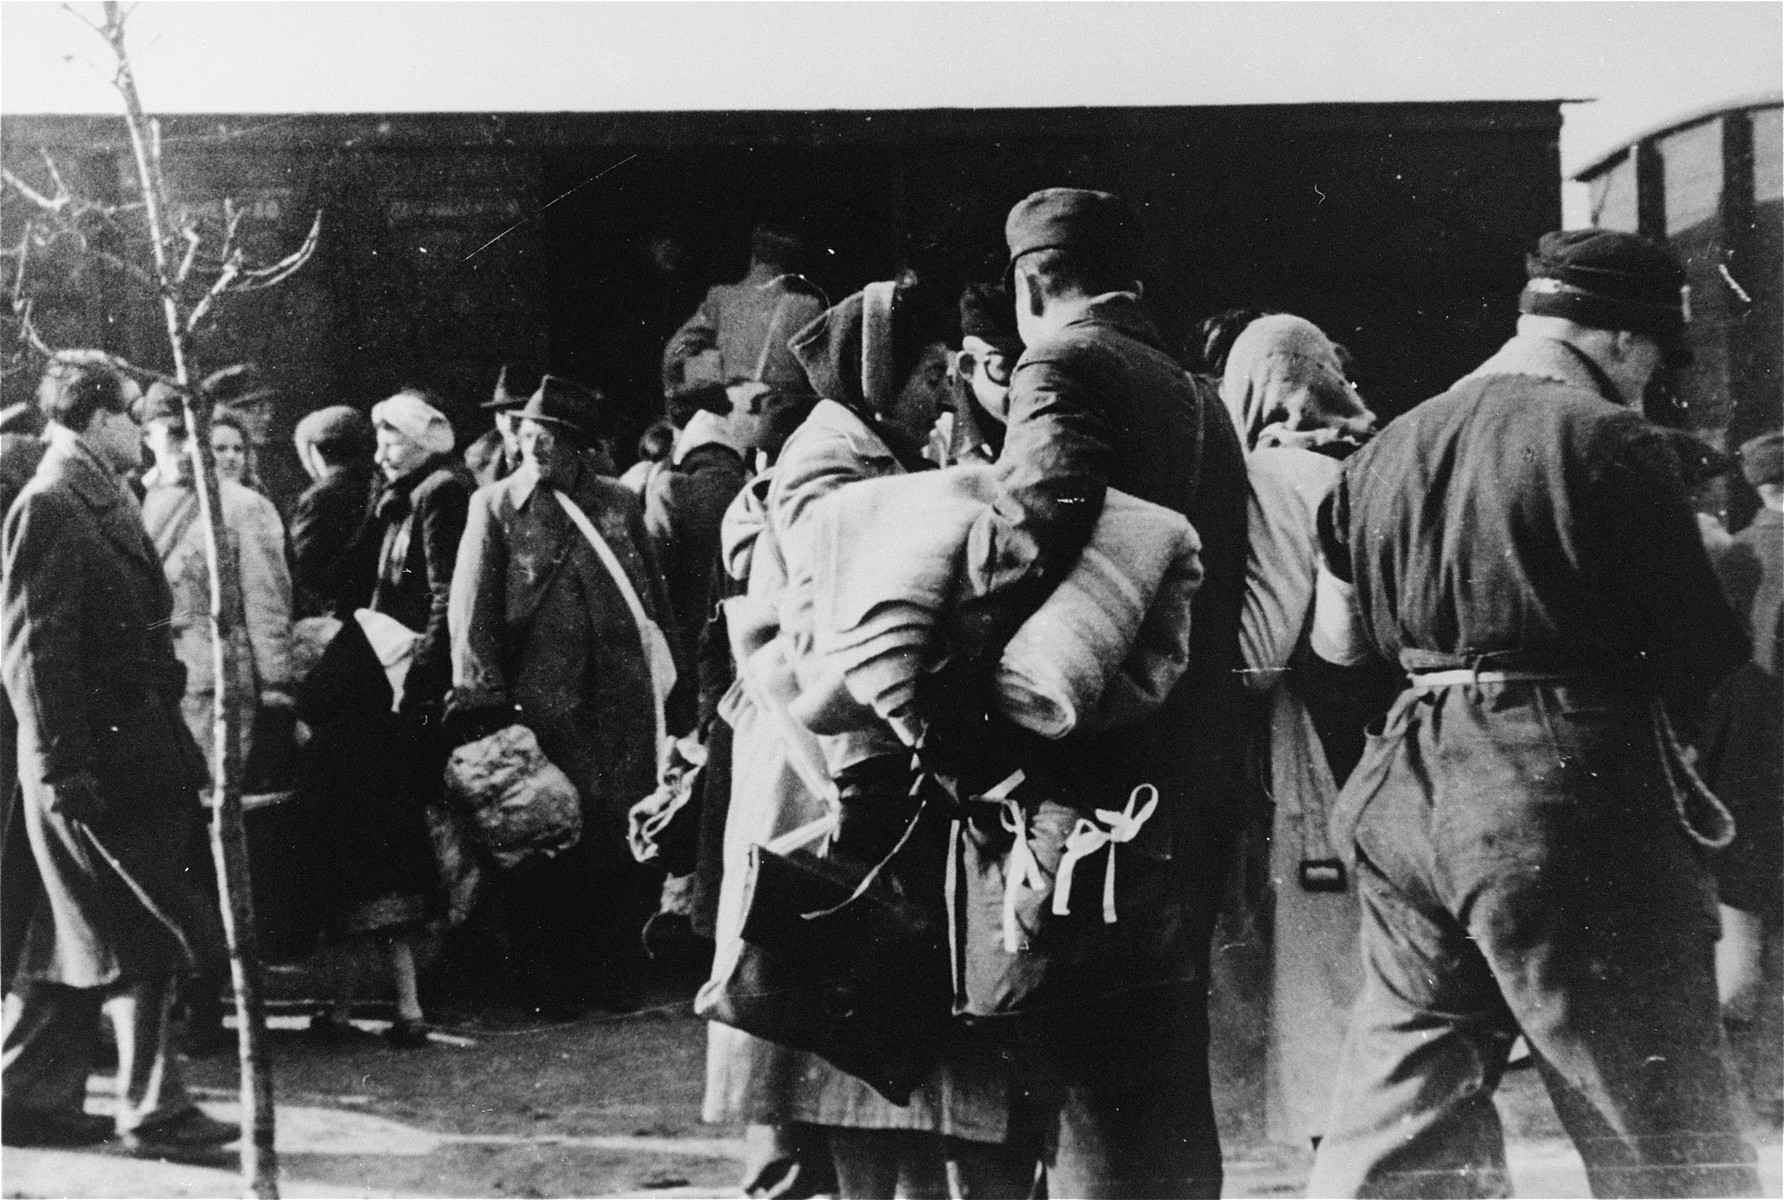 The deportation of Jews from Westerbork.  Members of the Ordedienst (Jewish police) are visible in the foreground.